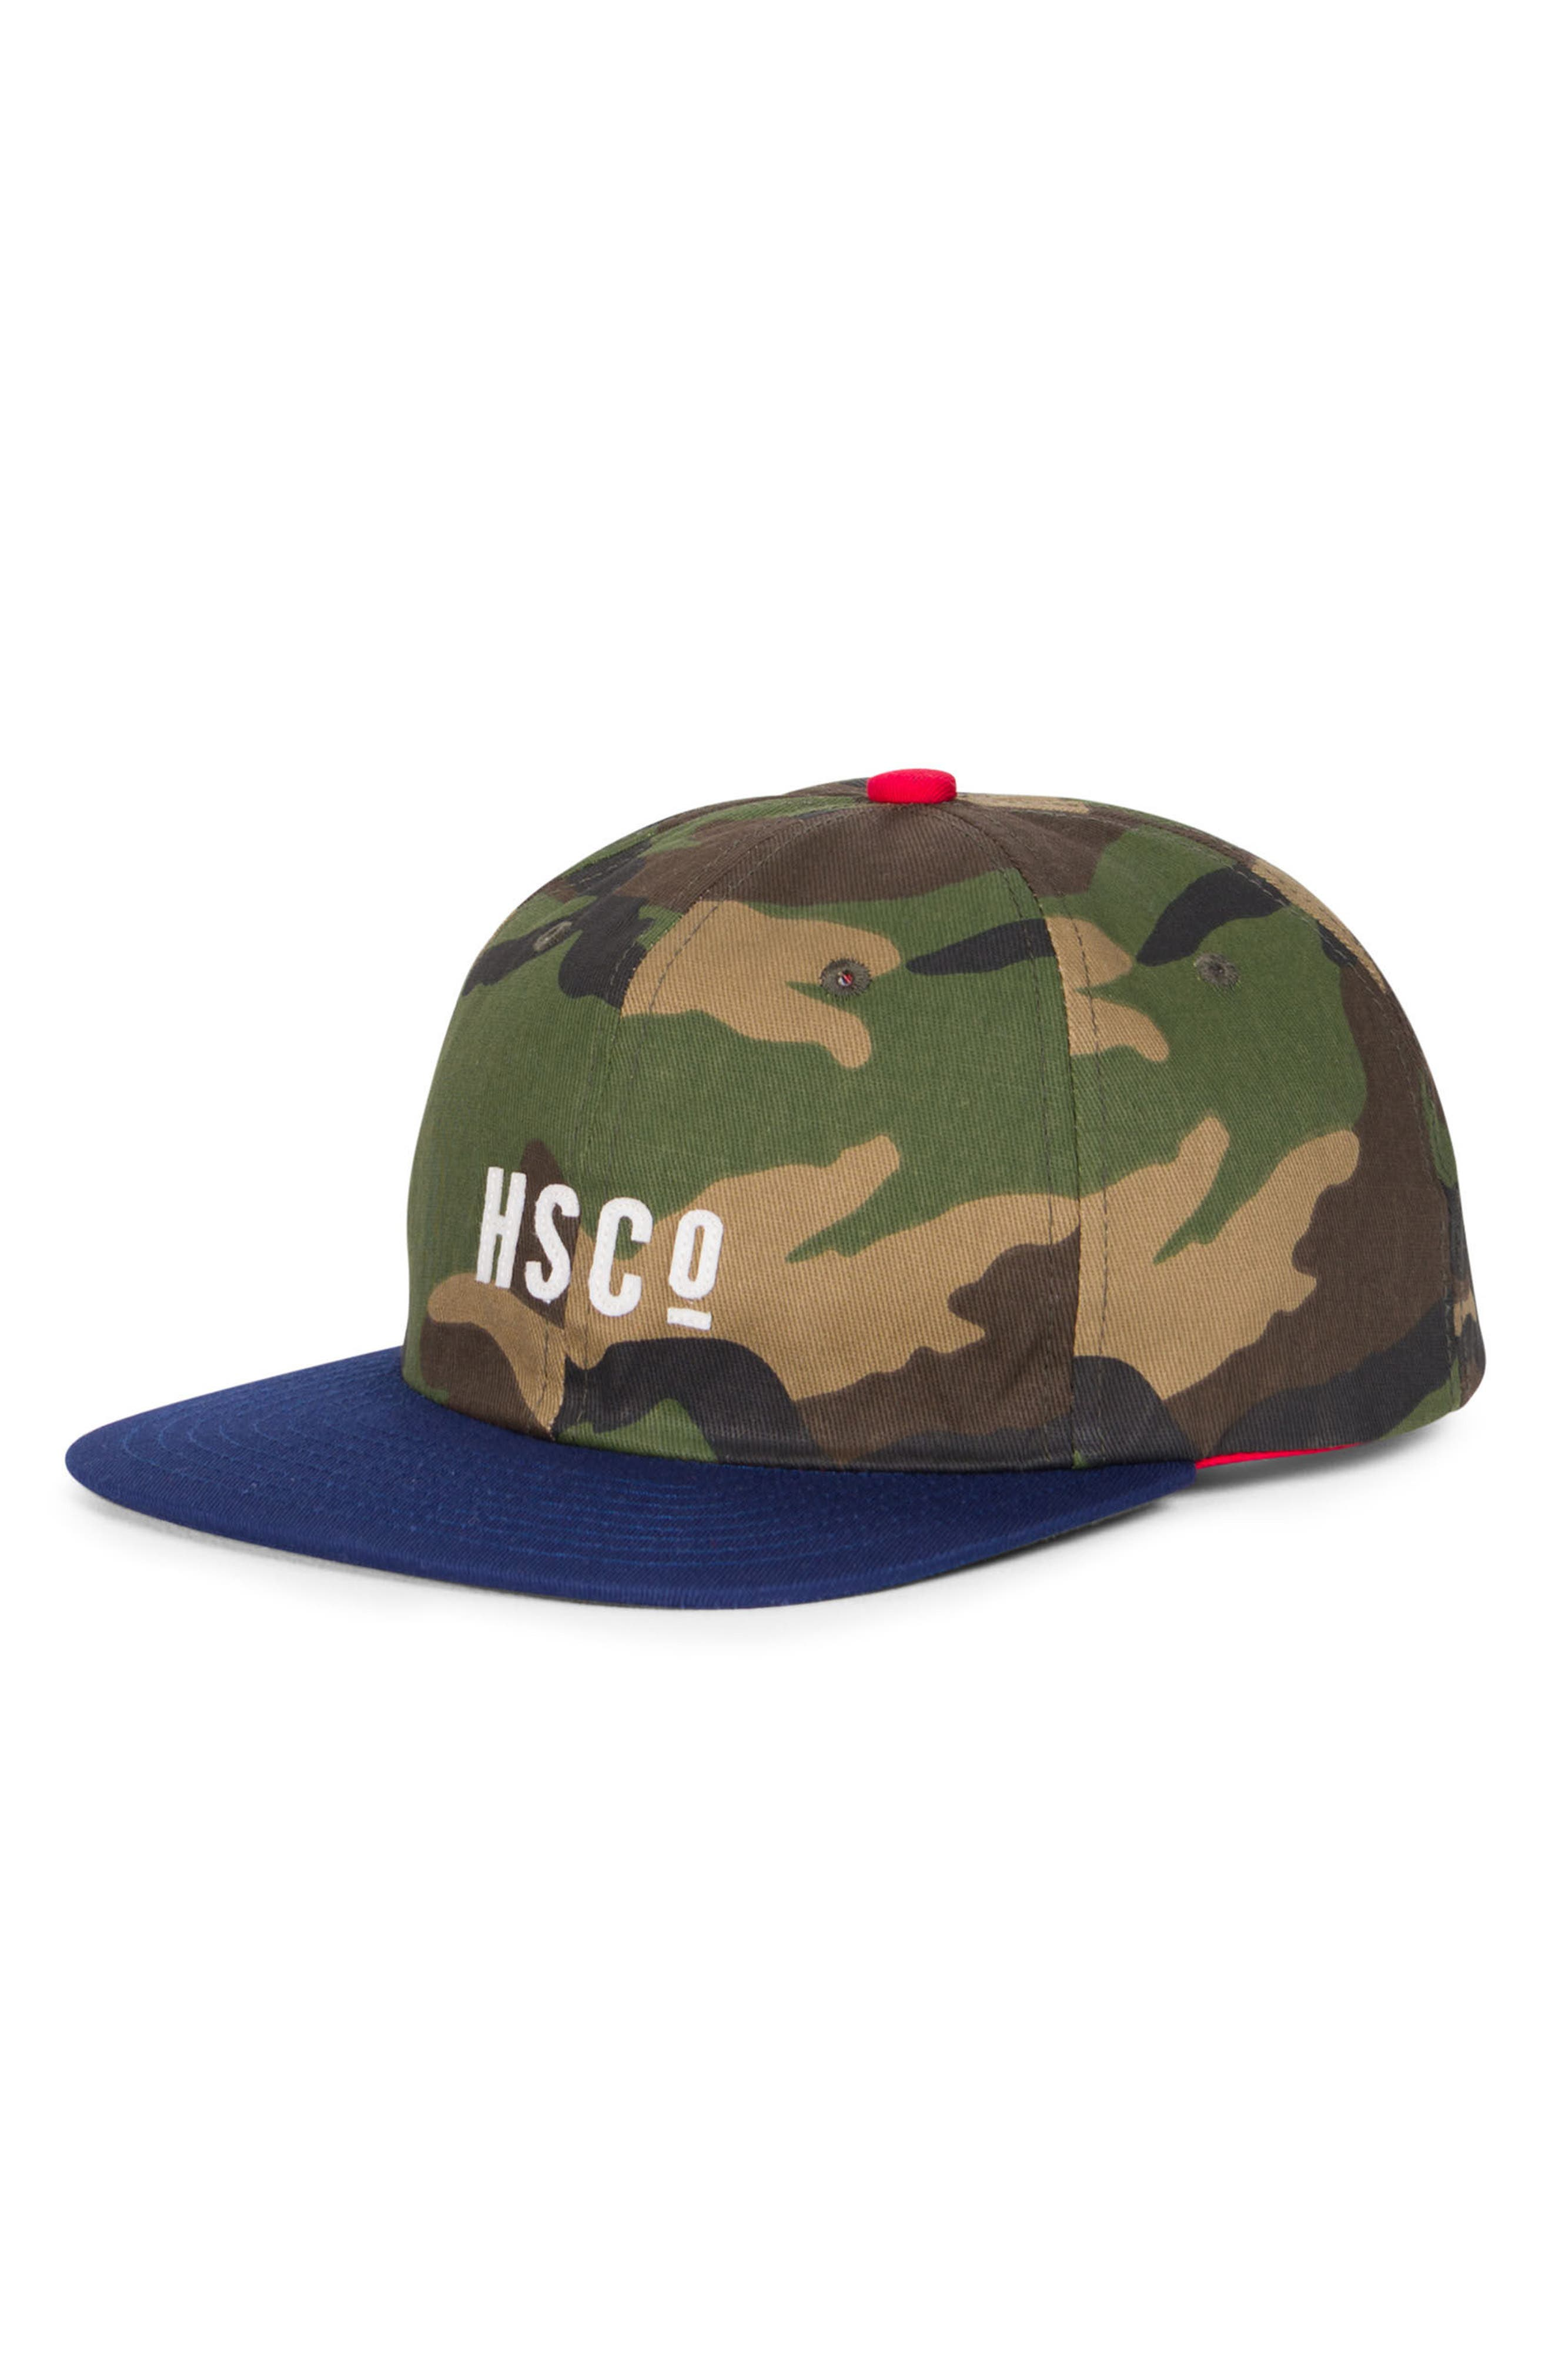 Herschel Supply Co. Mosby Camo Snapback Baseball Cap